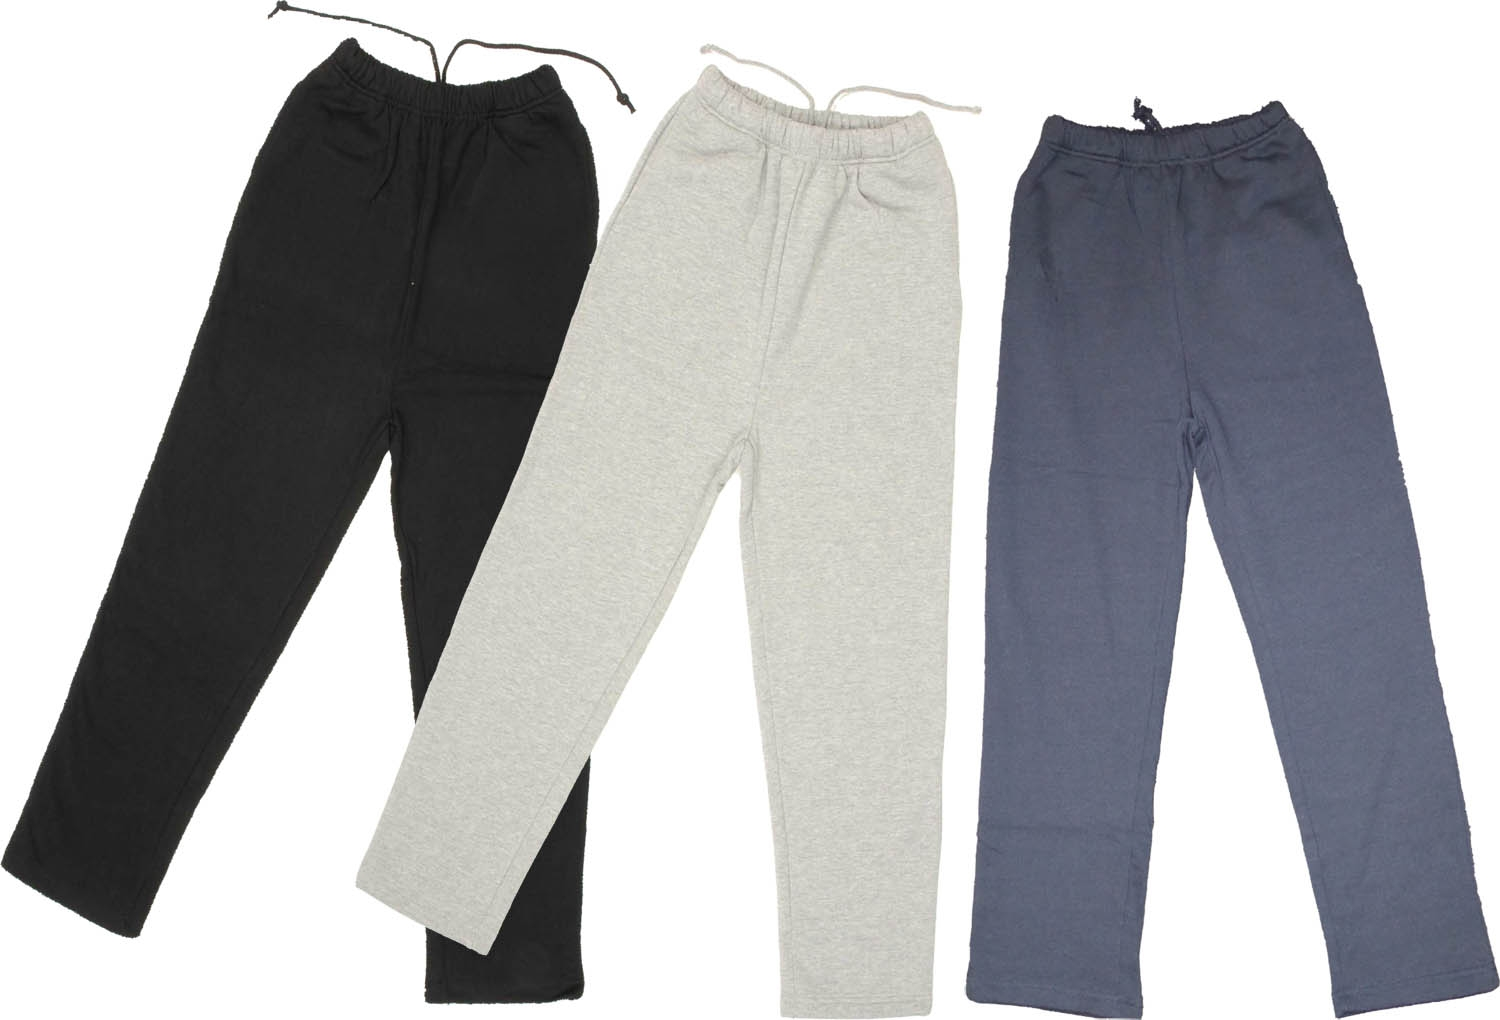 Youth Unisex Fleece Sweatpant